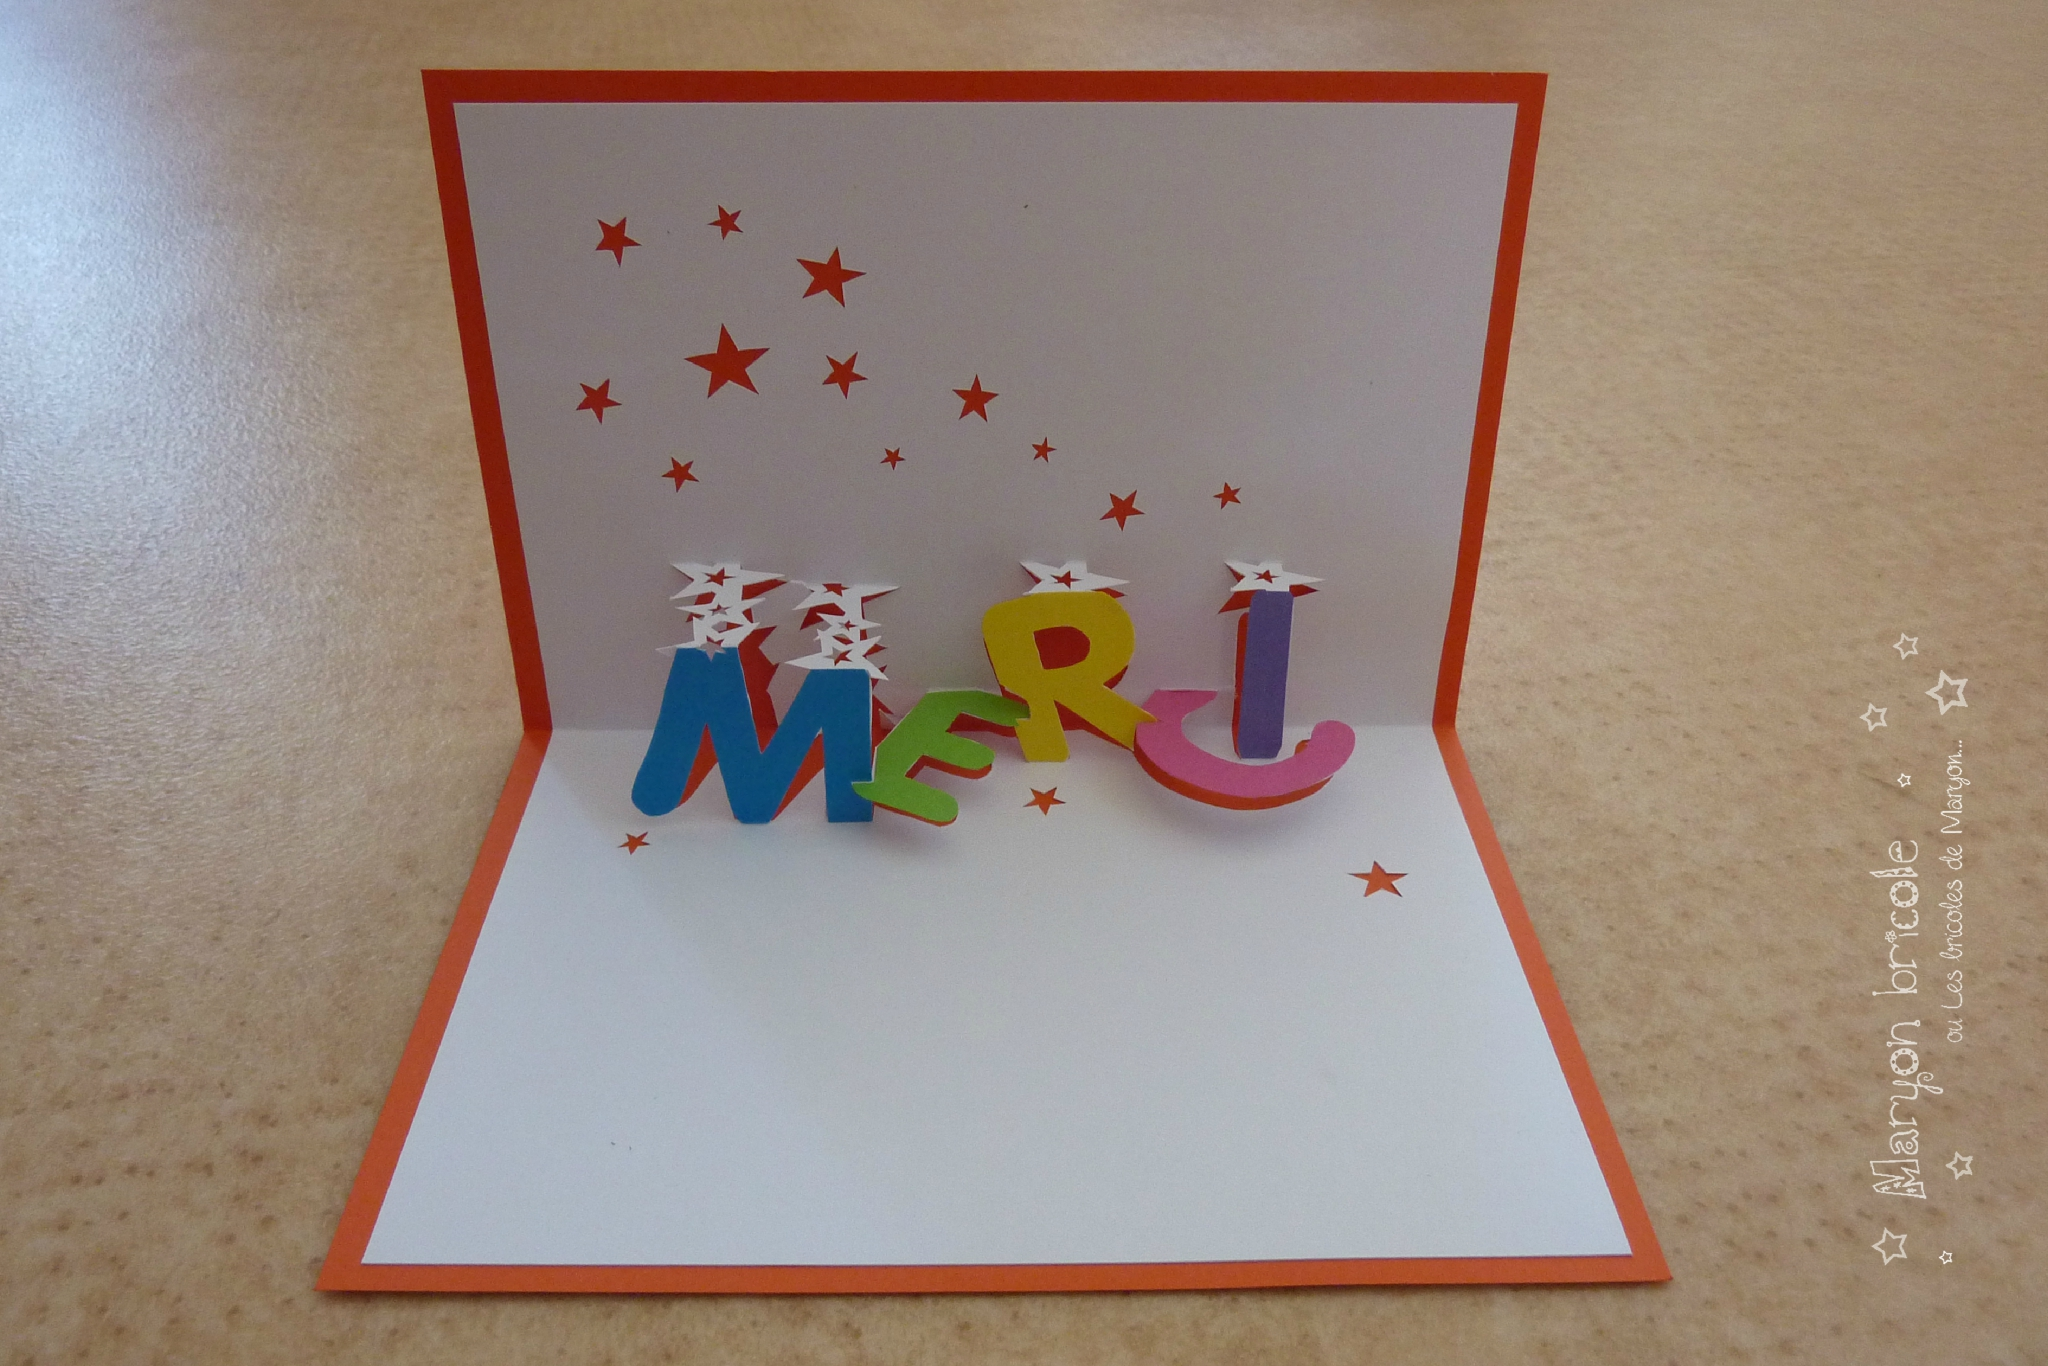 Cartes de voeux 3d pop up tous les messages sur cartes de voeux 3d pop up page 3 - Carte de voeux pop up ...